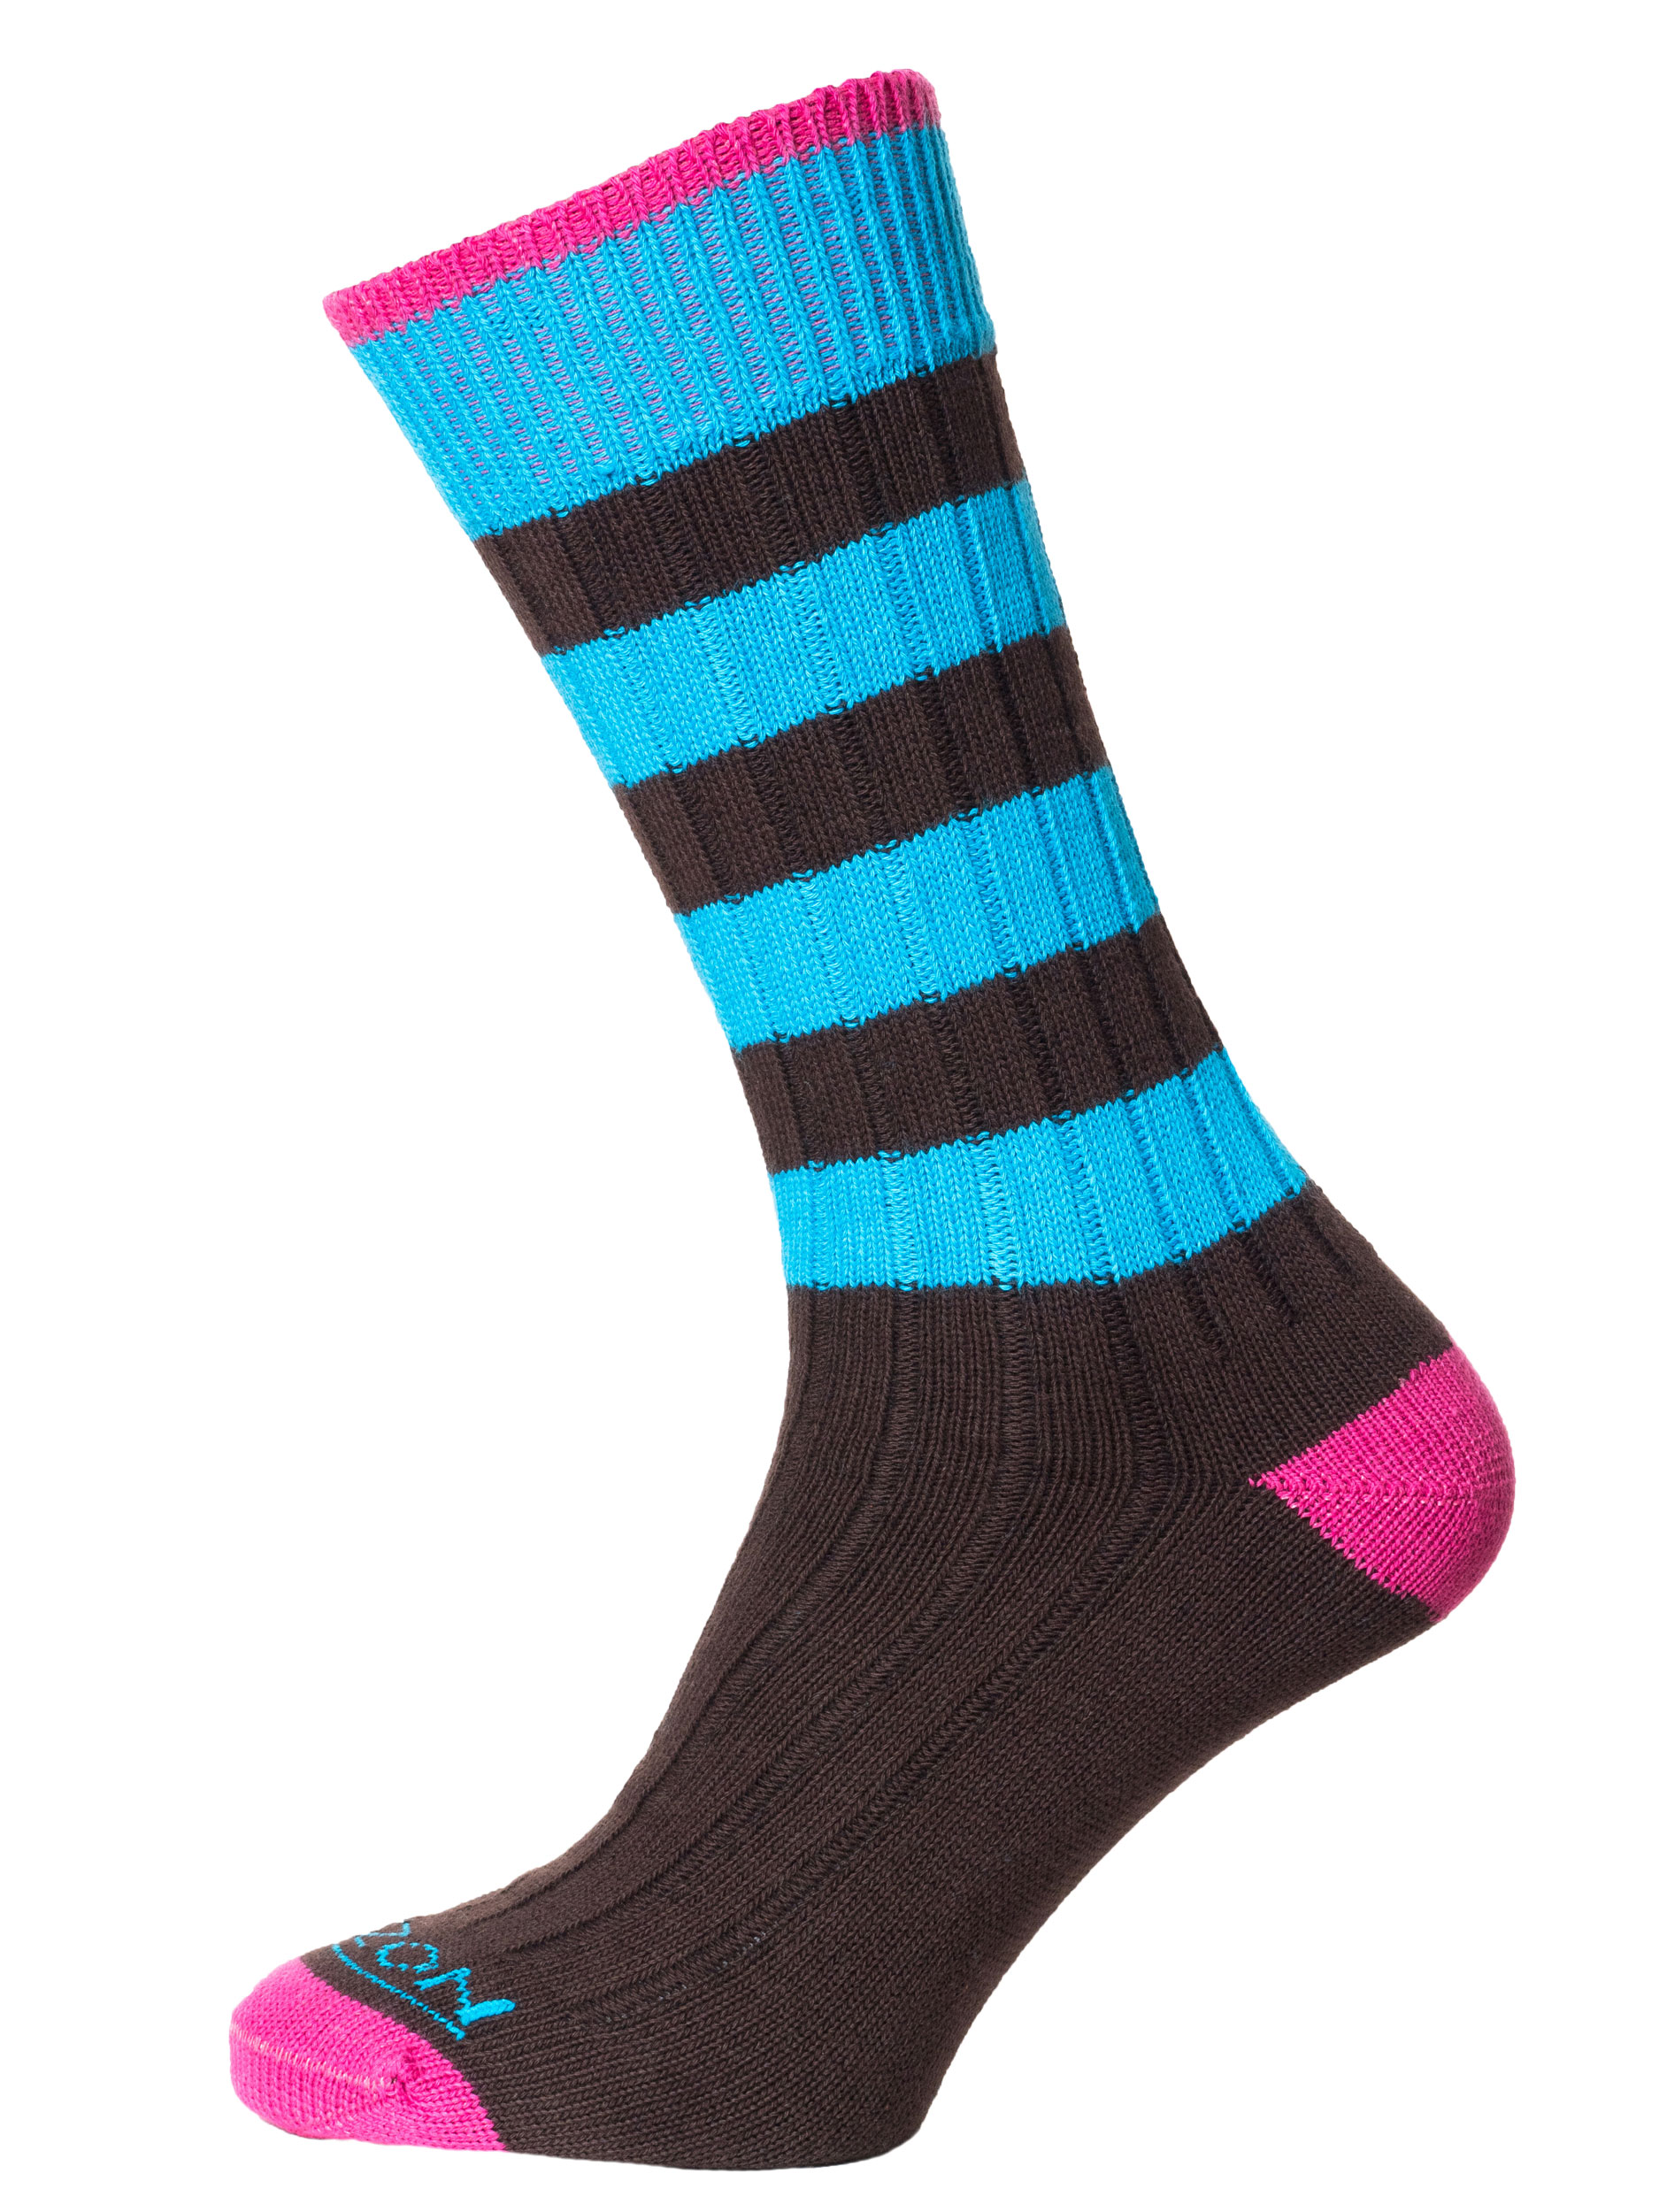 Leisure Mens Cotton Sock Brown Turquoise